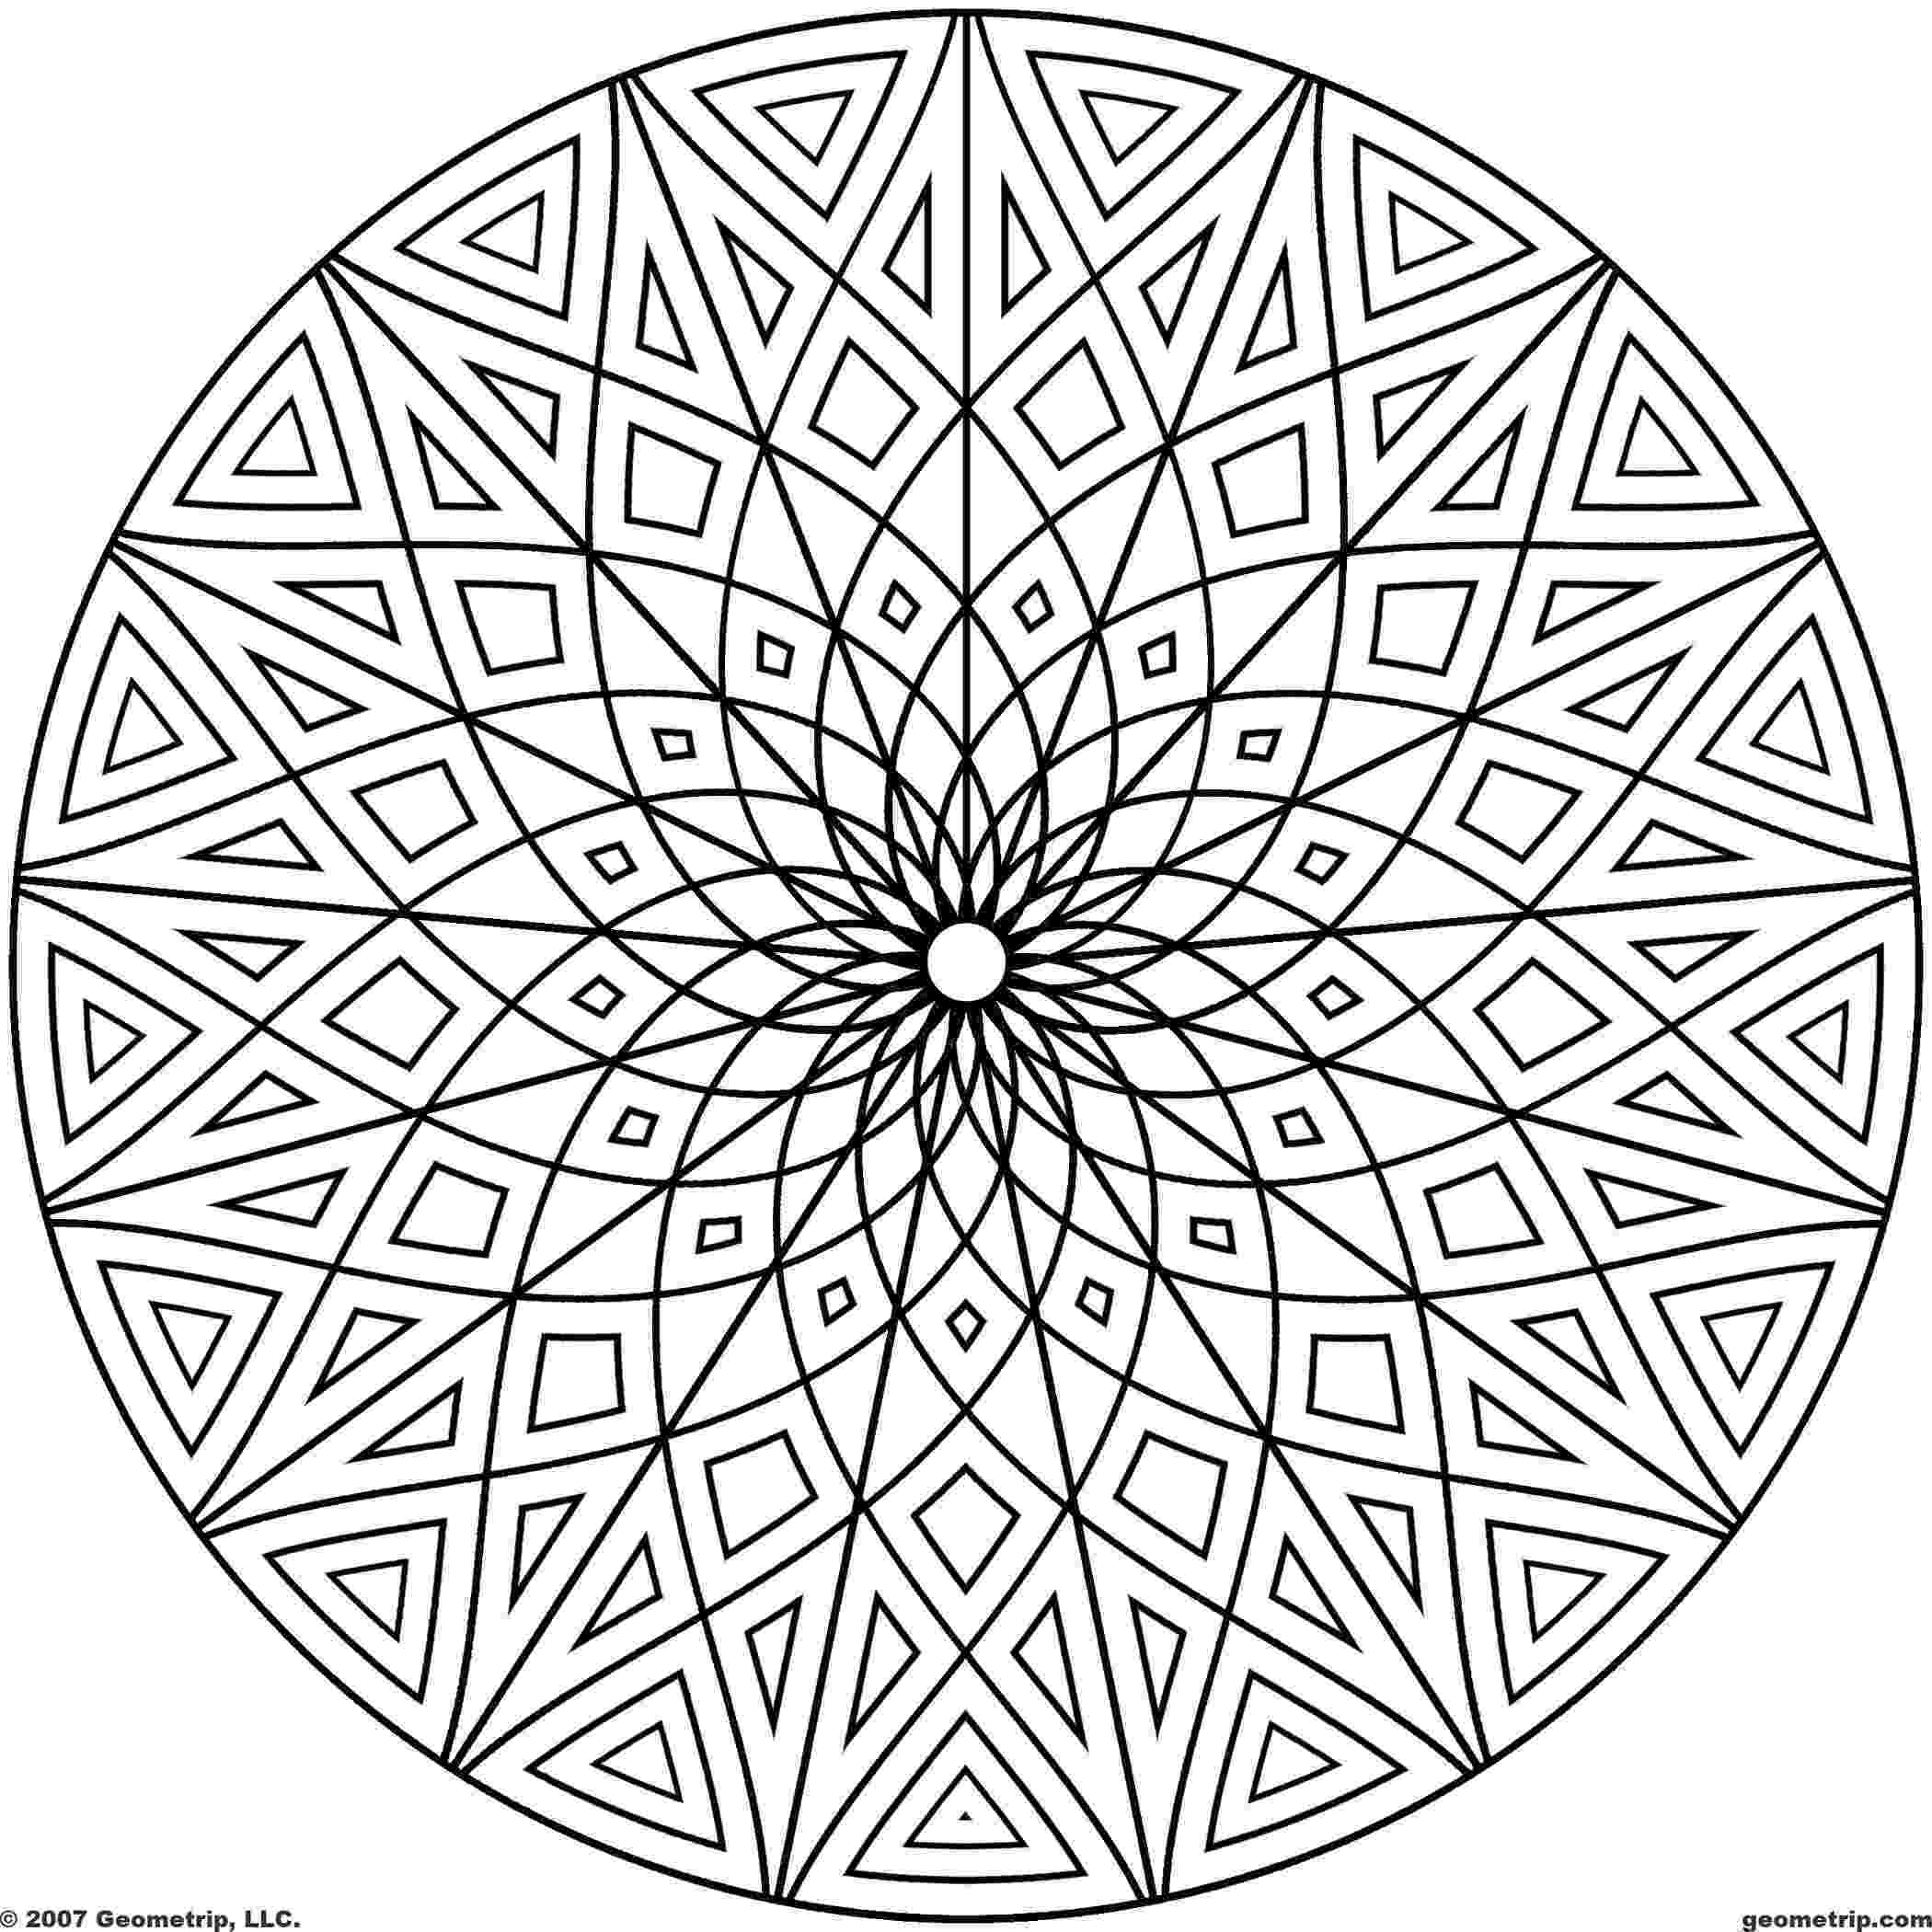 cool pictures to color and print 16 cool coloring pages of designs images cool geometric cool and to print color pictures